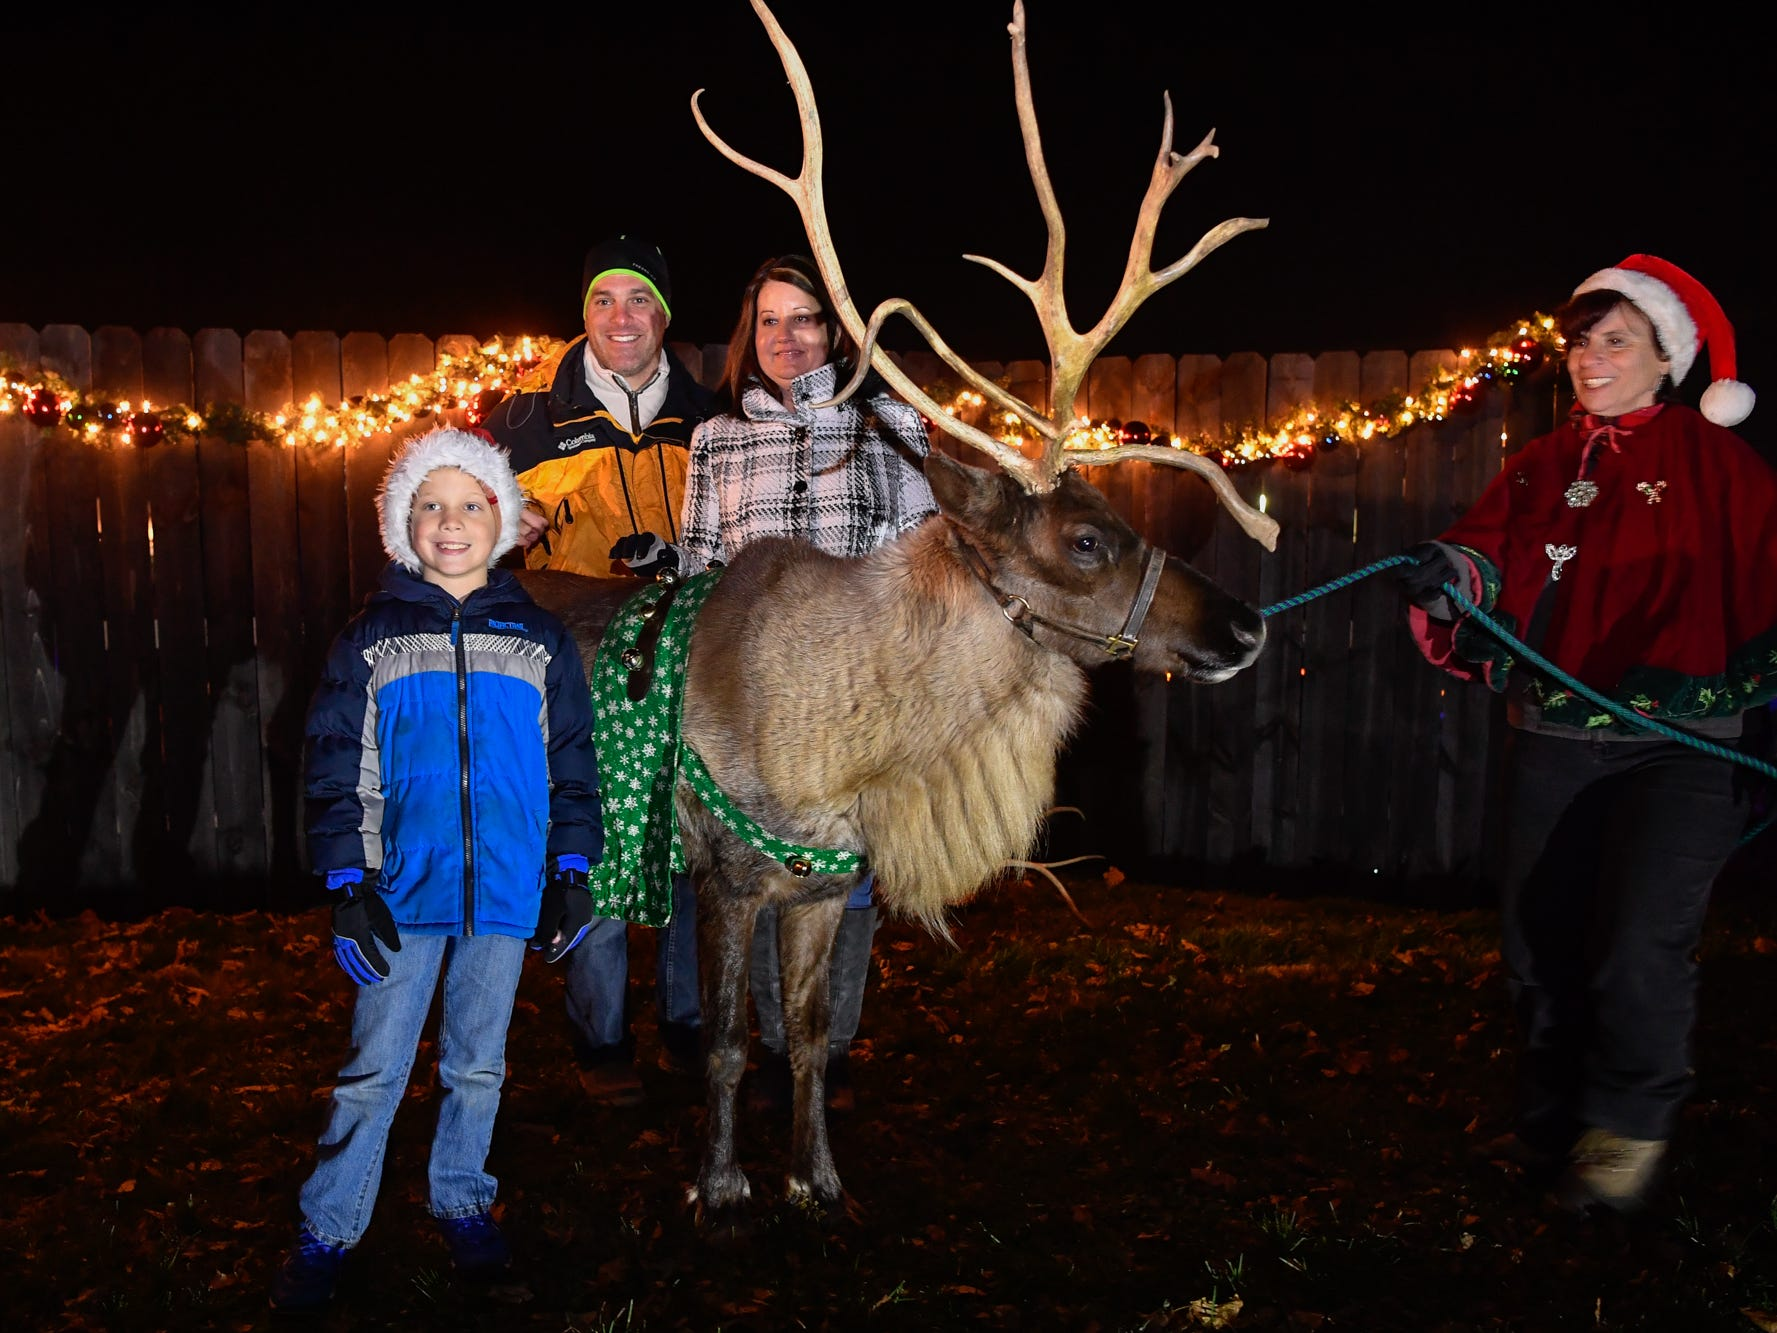 Cameron Auchey, 8, and his parents Mitchell and Jaime, of Spring Grove, pose with Aspen the reindeer during the 3rd annual Christmas tree lighting in Spring Grove, Thursday, November 29, 2018. 